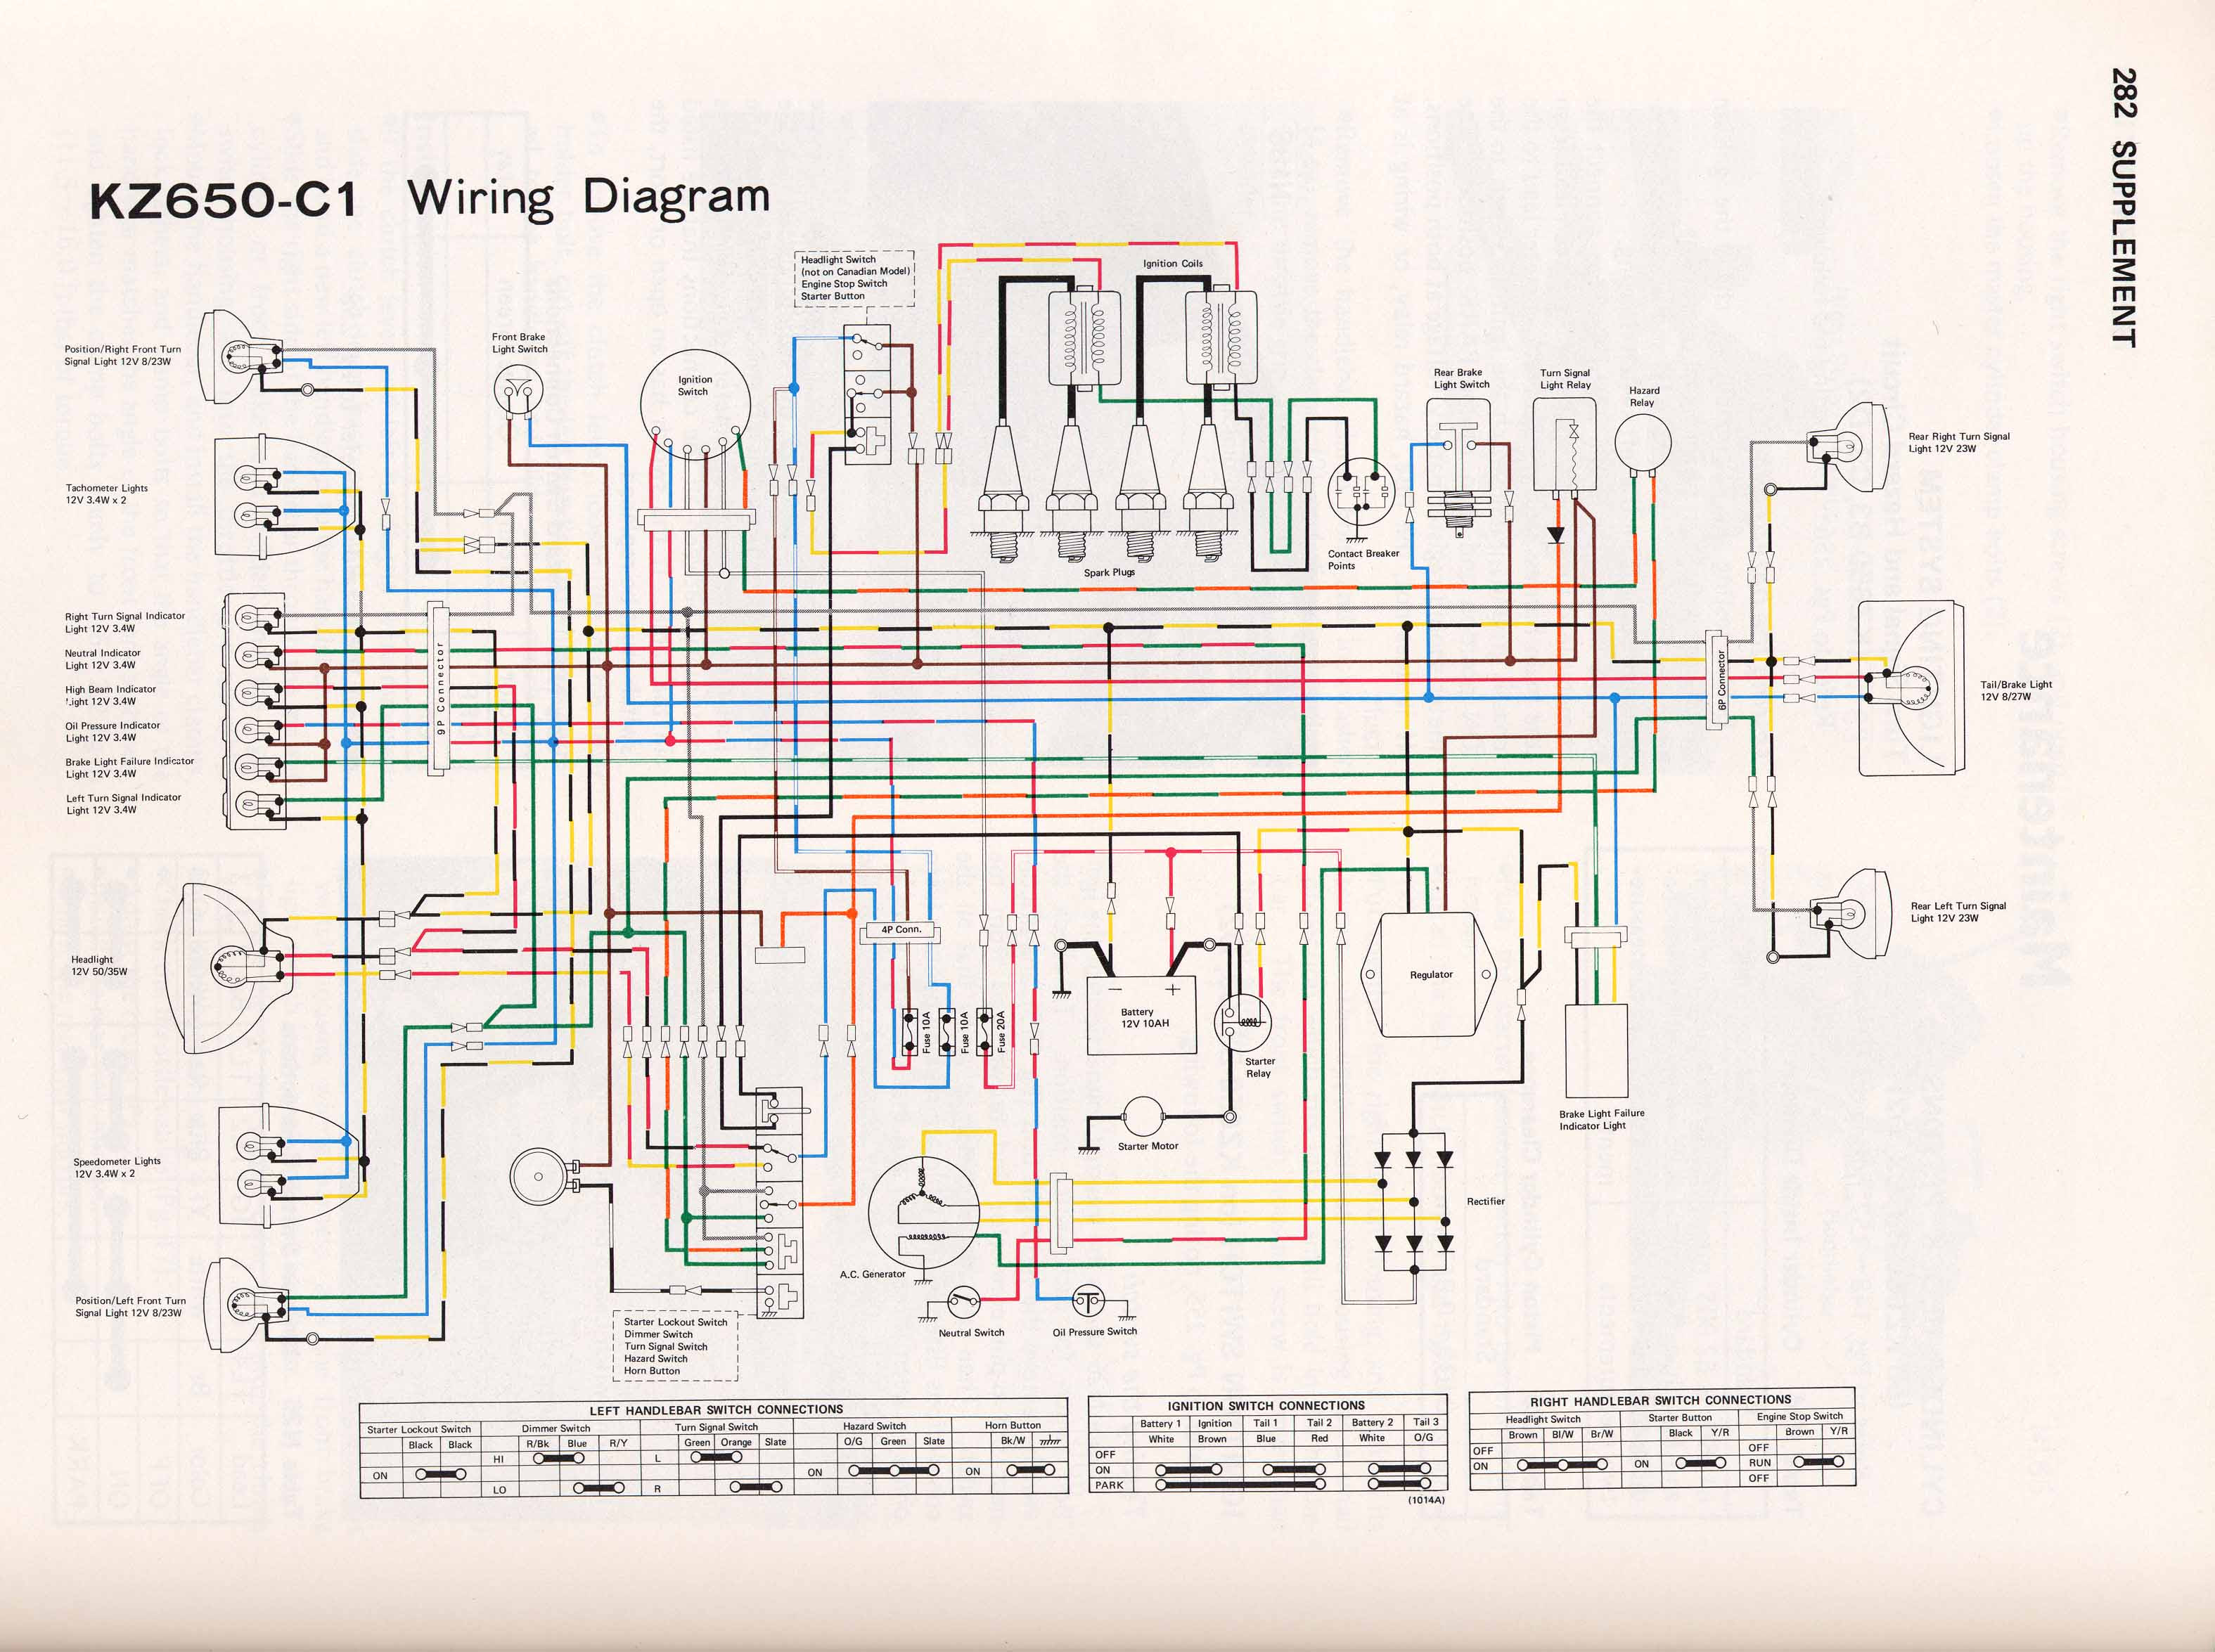 Diagram 1982 Kz650h Wiring Diagram Full Version Hd Quality Wiring Diagram Diagramtree Media90 It